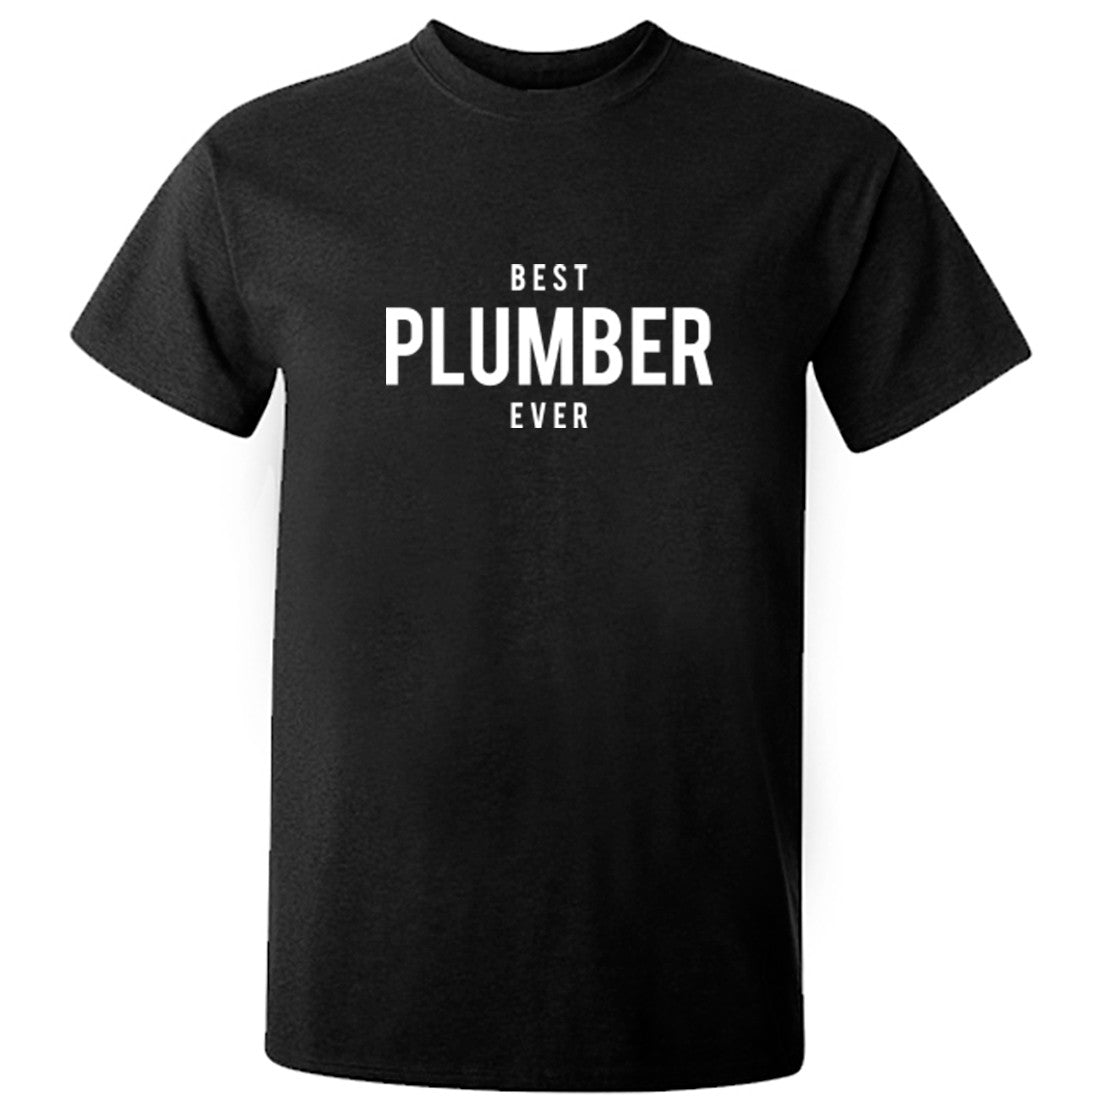 Best Plumber Ever Unisex Fit T-Shirt K1500